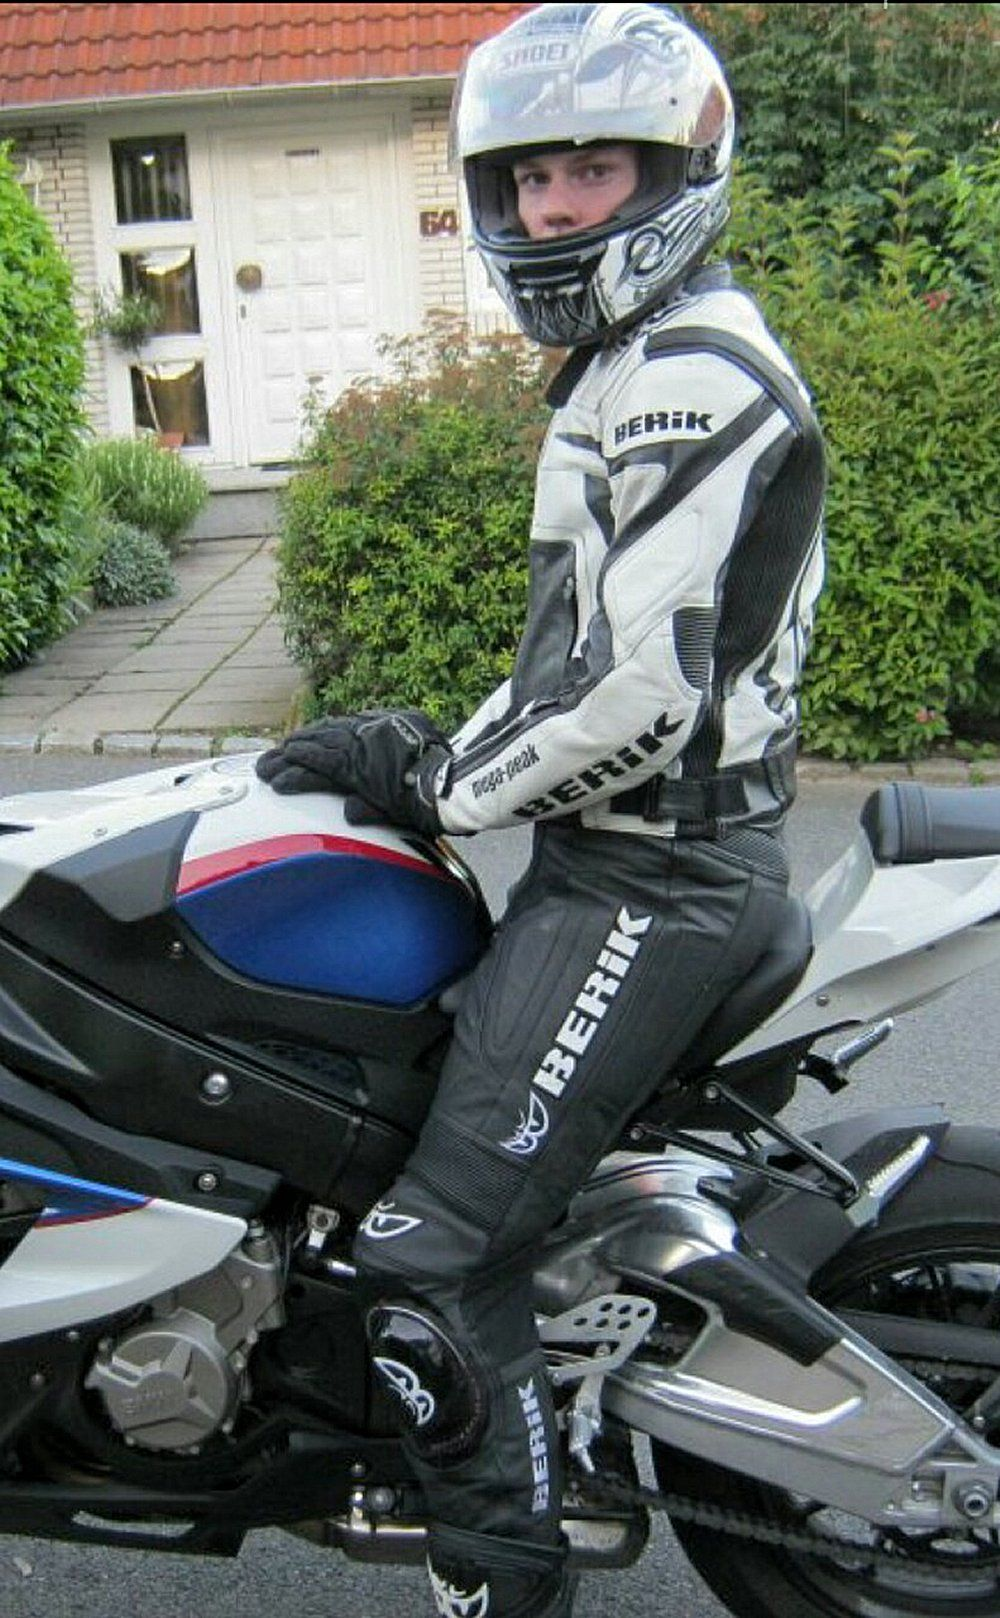 On Guys and Bikes Black leather motorcycle jacket